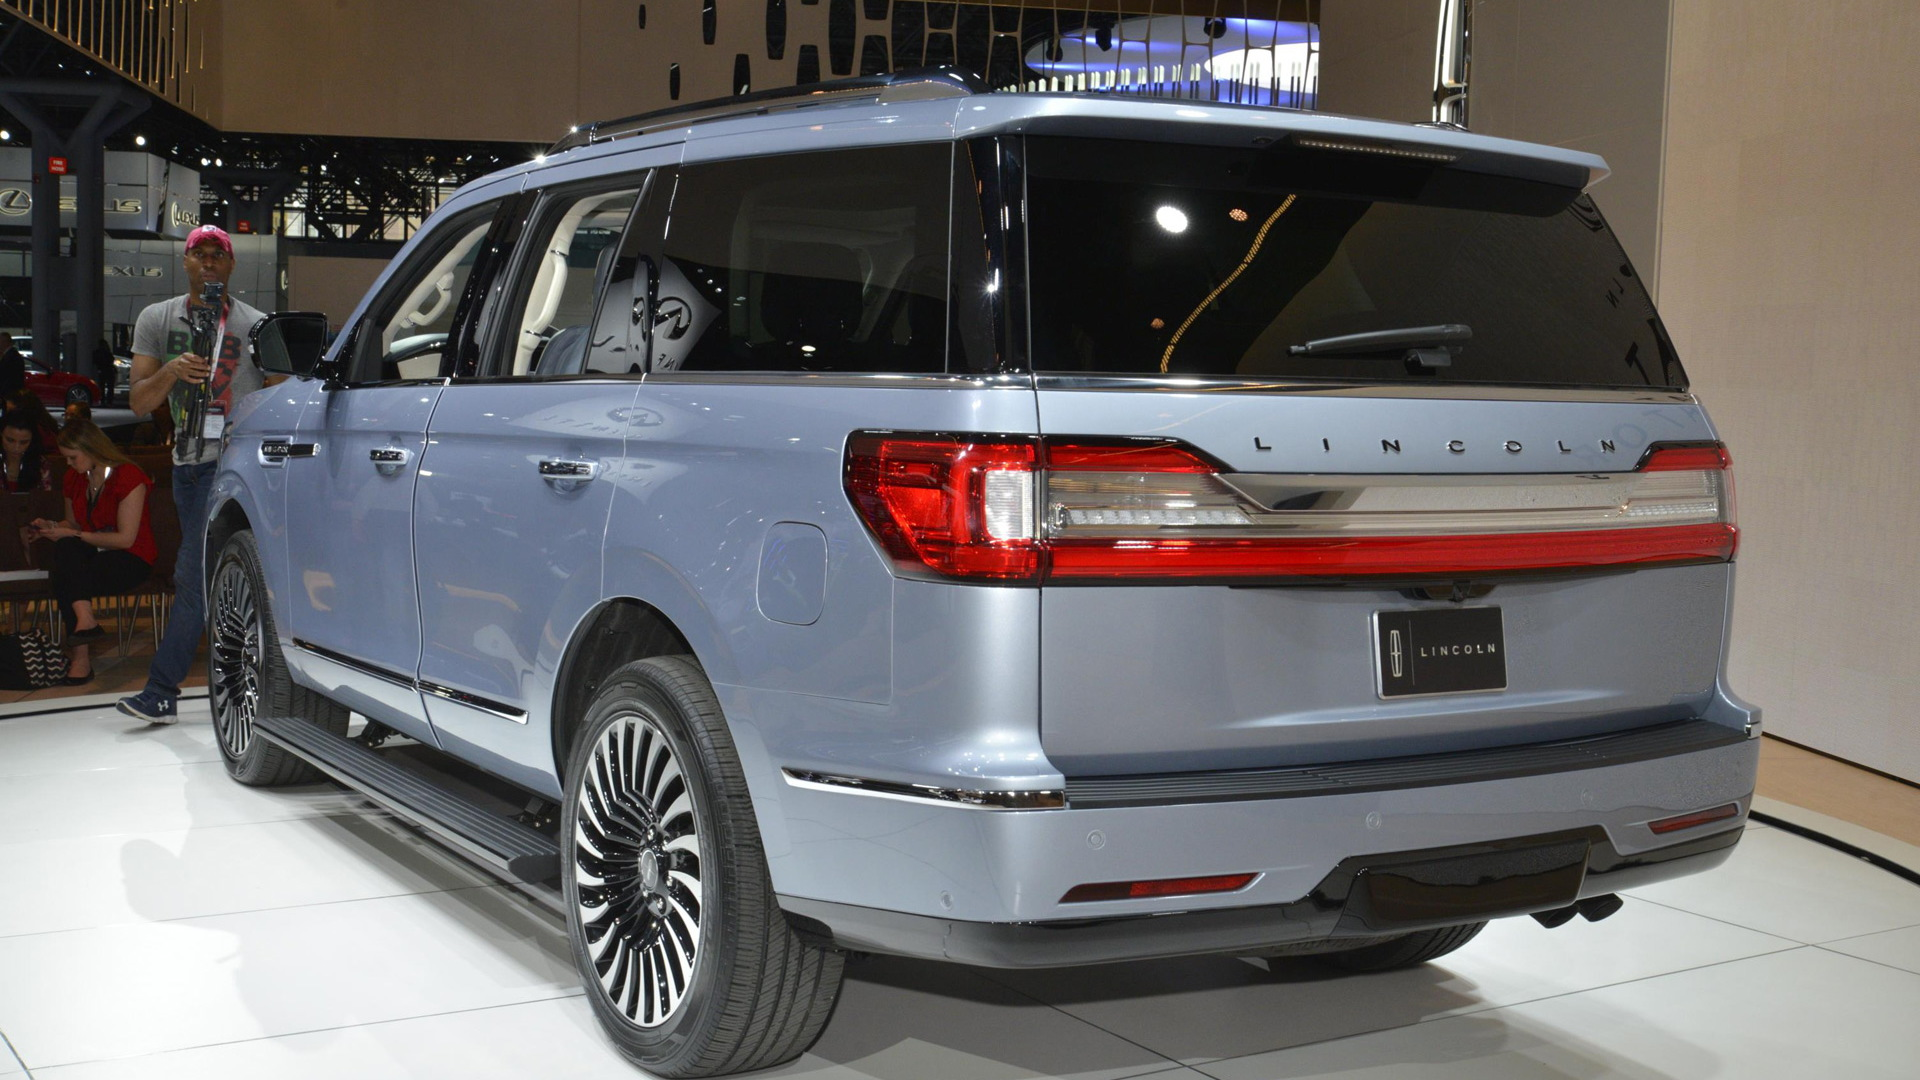 2018 Lincoln Navigator, 2017 New York auto show